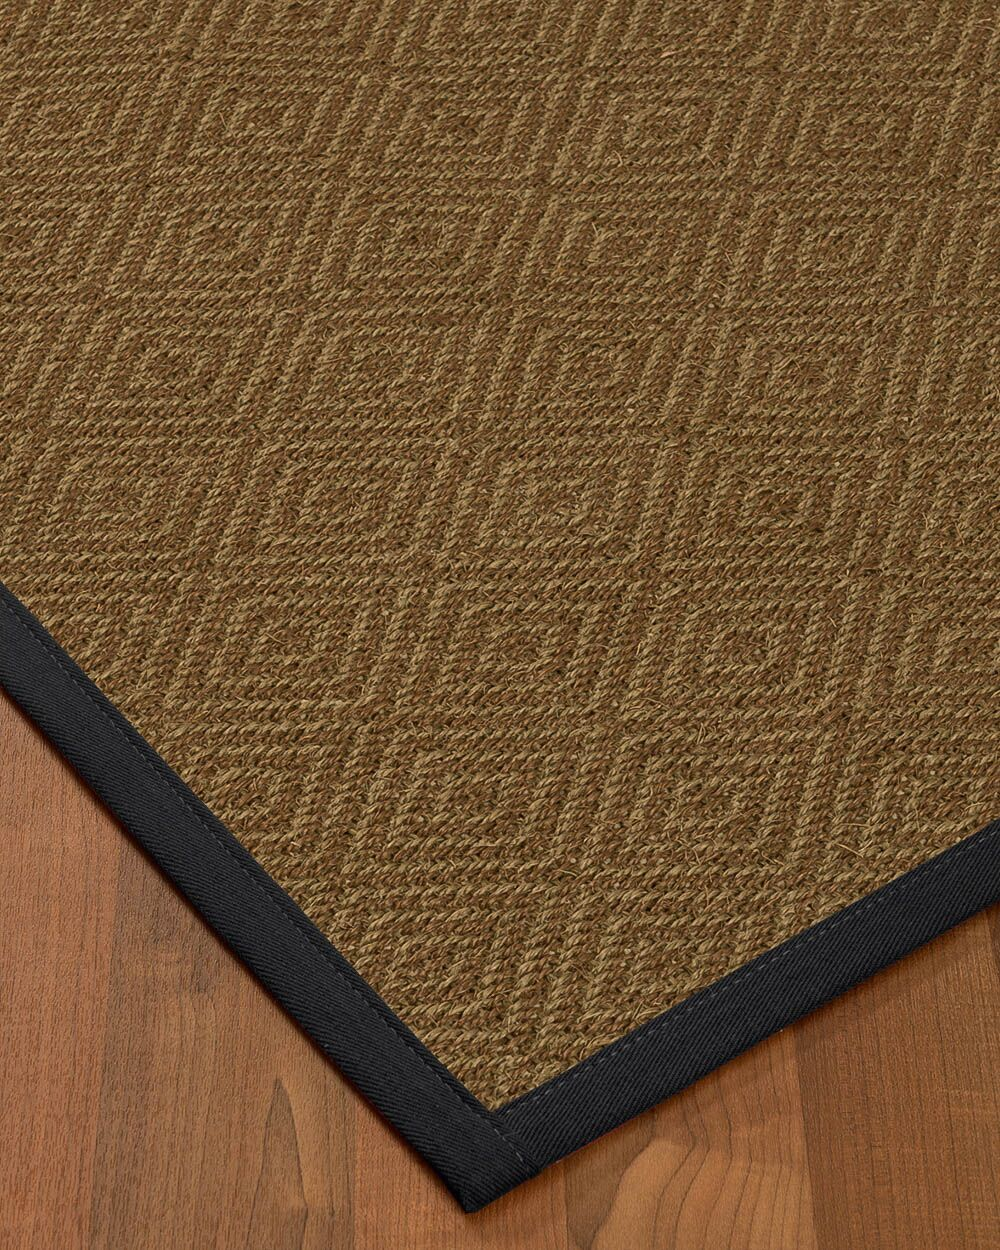 Magnuson Border Hand-Woven Brown/Midnight Blue Area Rug Rug Pad Included: No, Rug Size: Runner 2'6